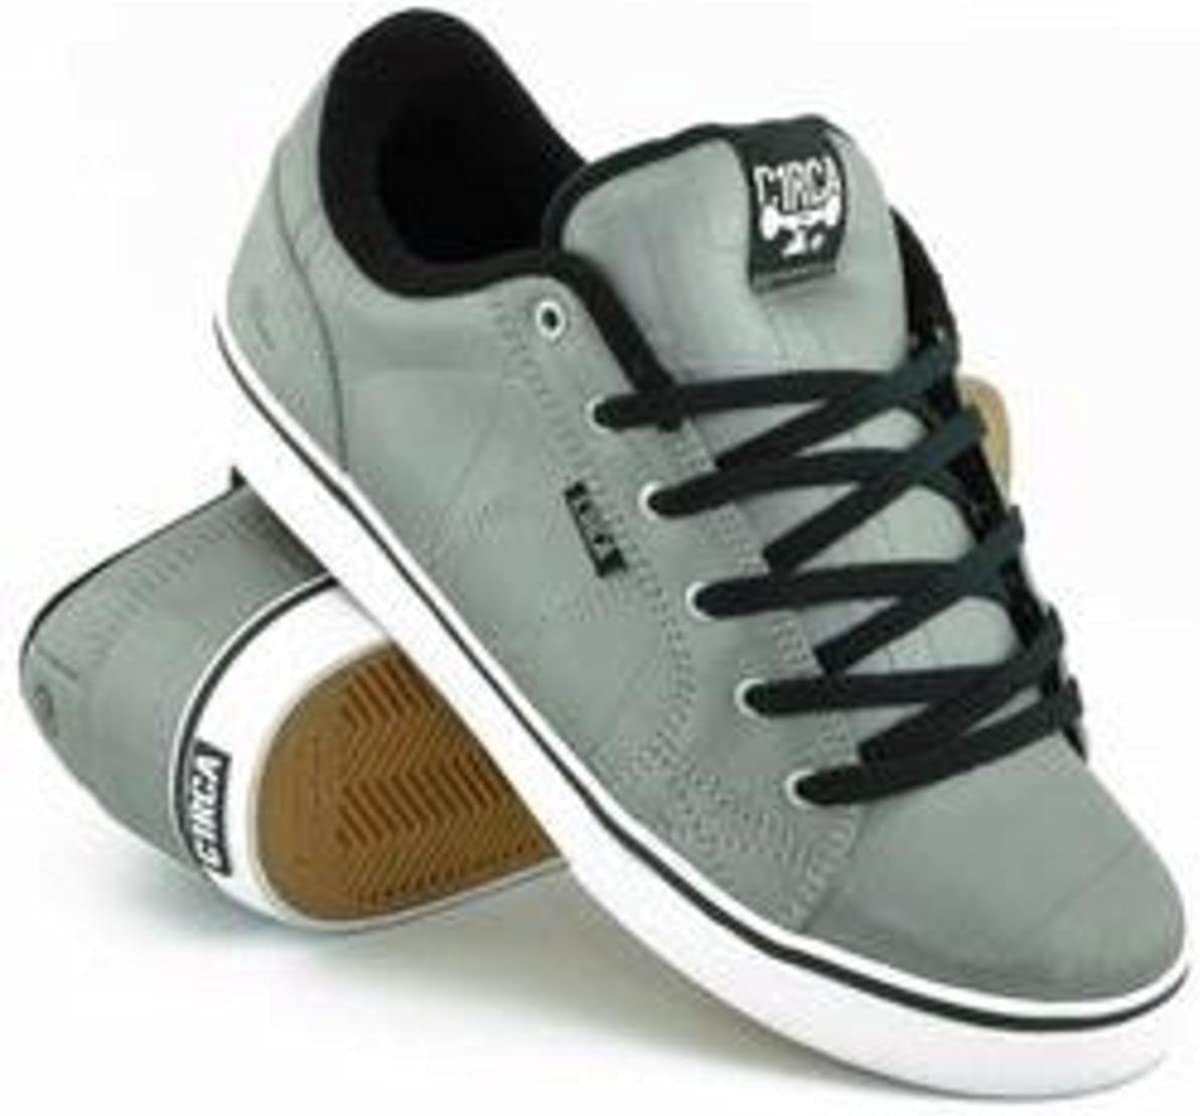 Circa Skate Shoes-Cero Duct Tape